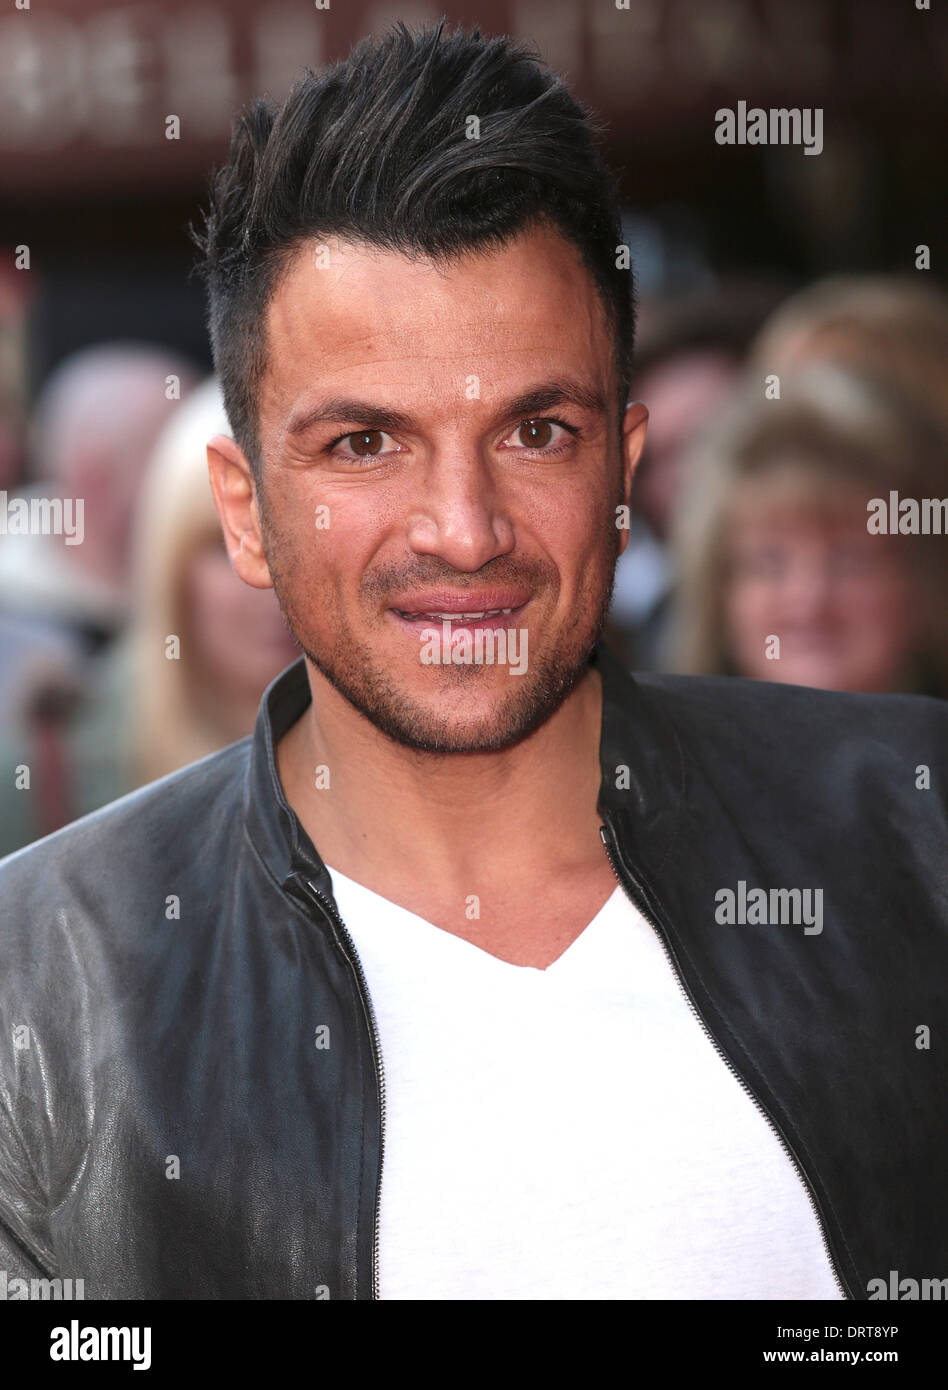 Peter andre arrives west london stock photos peter andre arrives london uk 1st february 2014 peter andre arrives for the vip gala screening of m4hsunfo